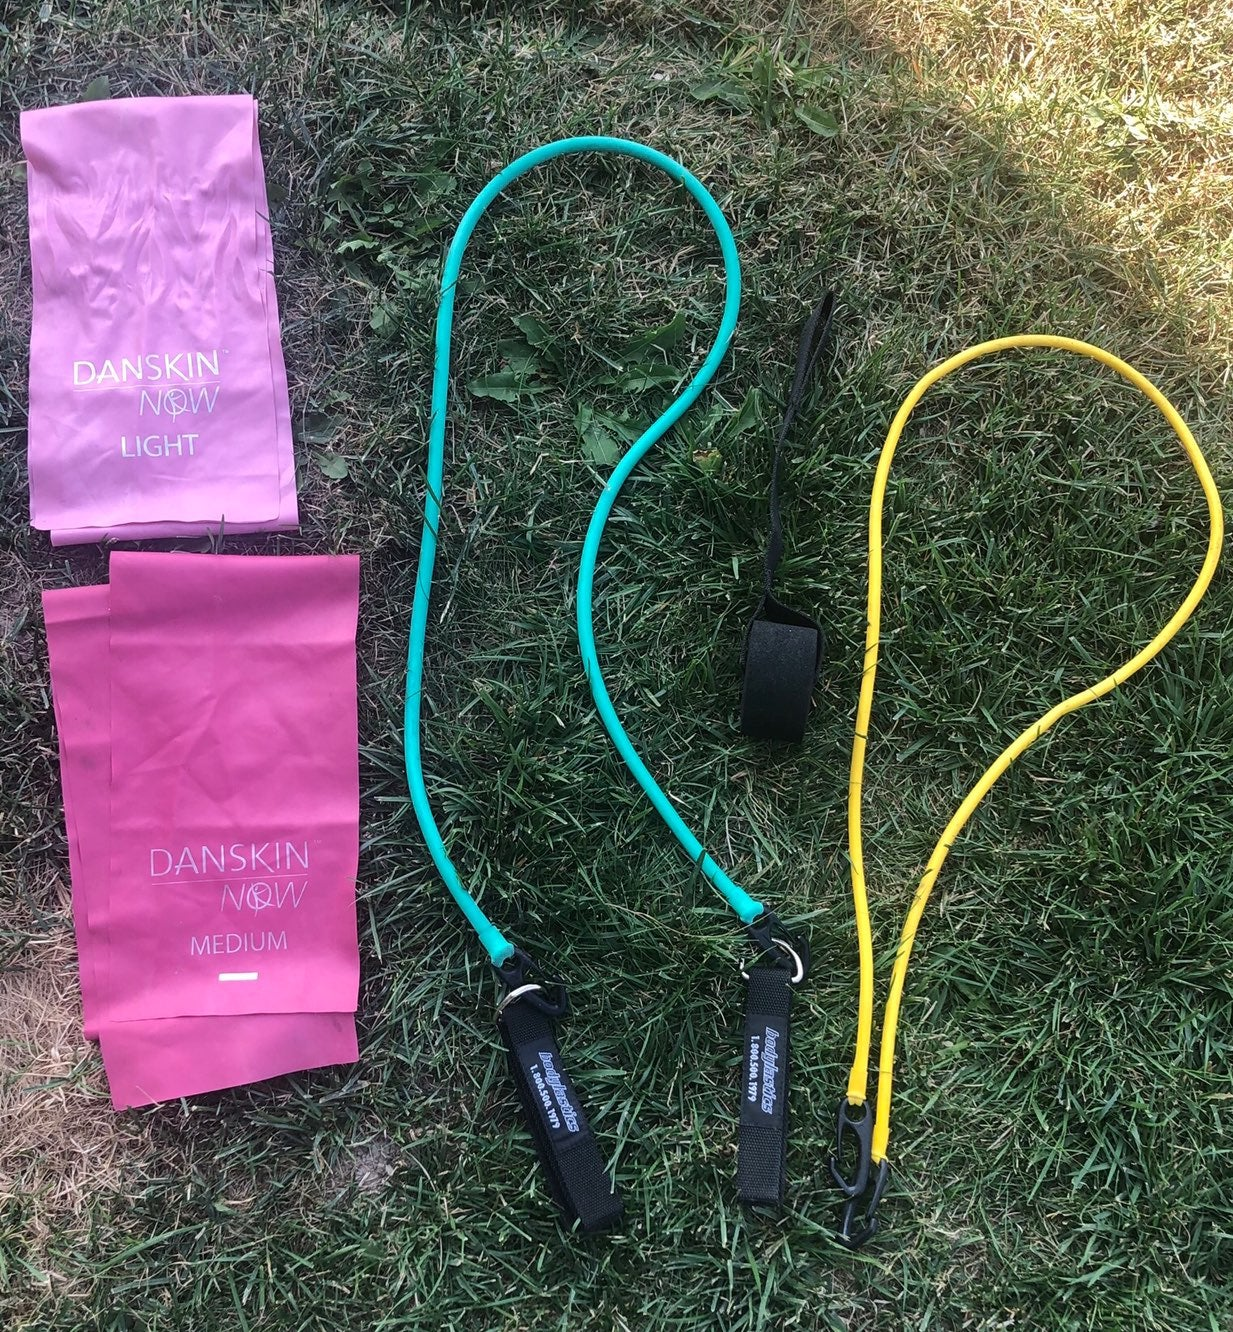 Resistance bands and accessories